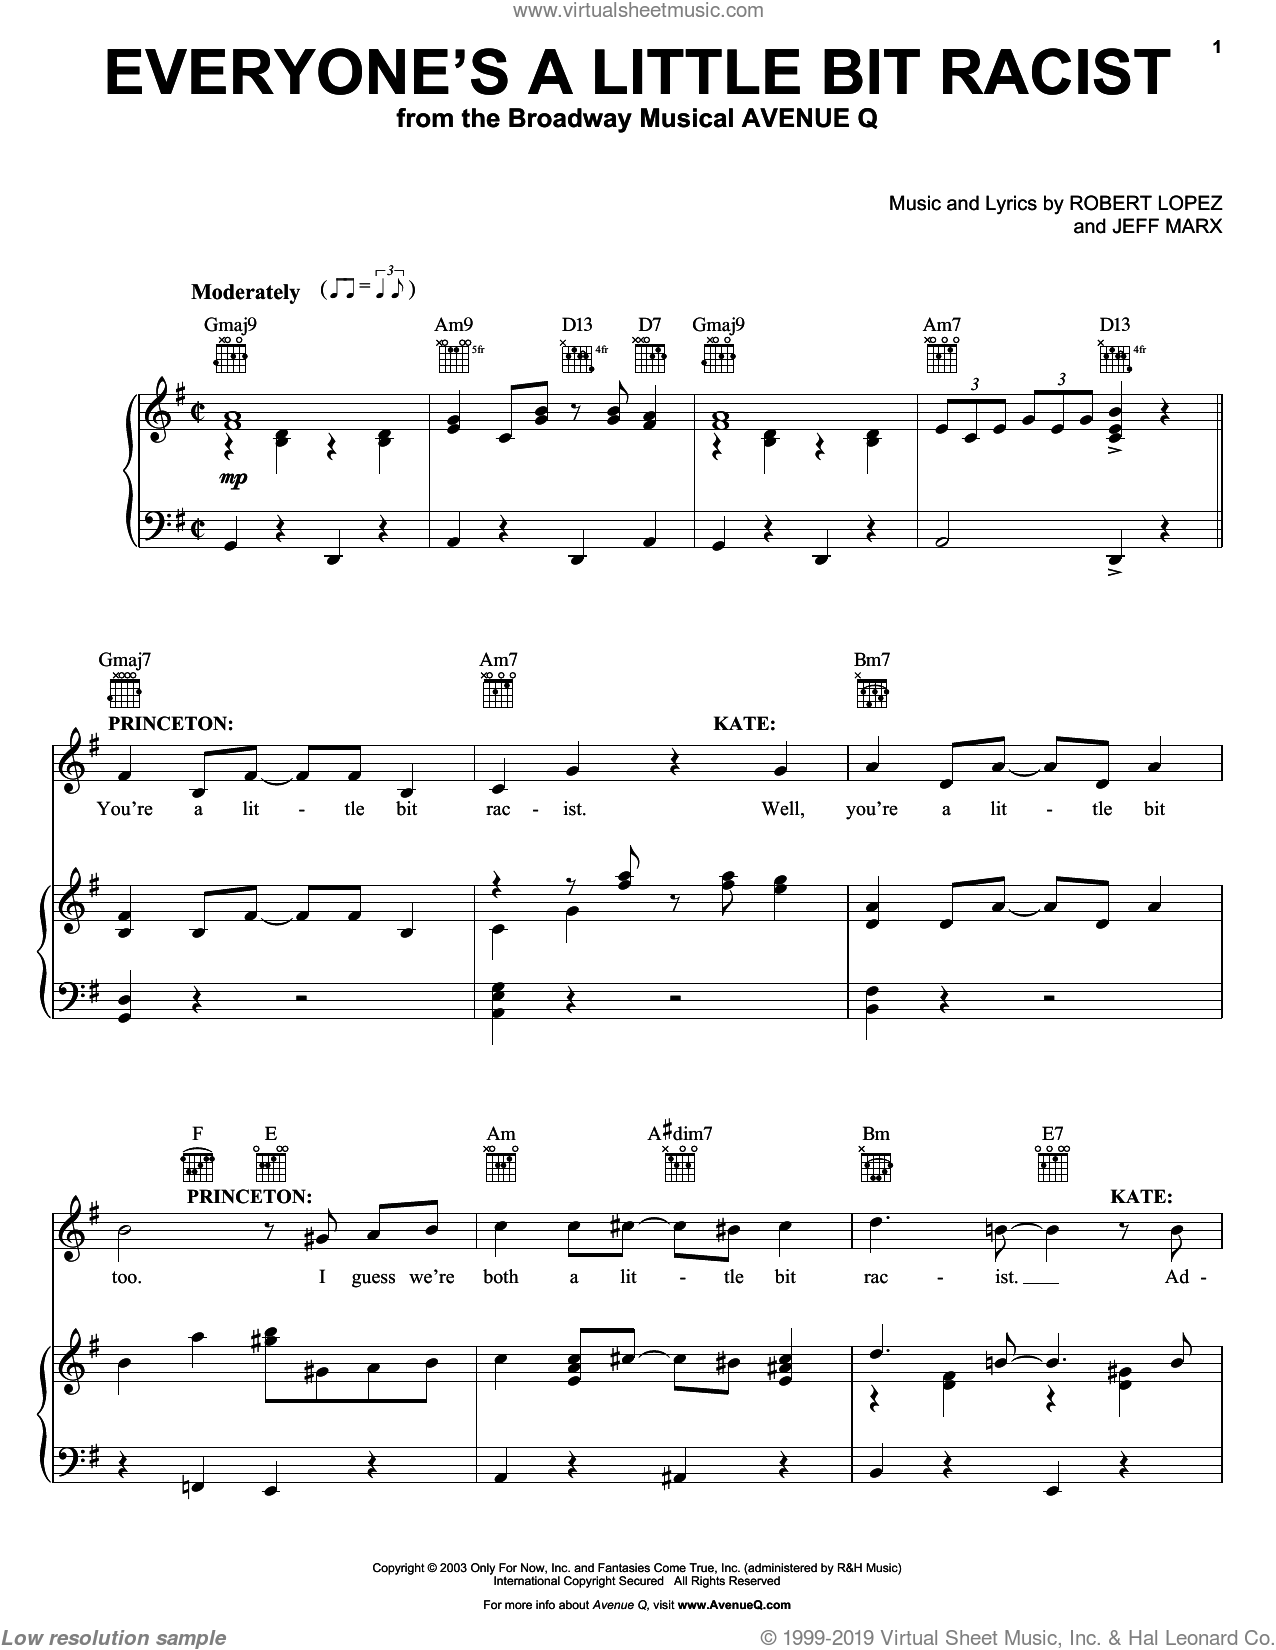 Everyone's A Little Bit Racist sheet music for voice, piano or guitar by Robert Lopez